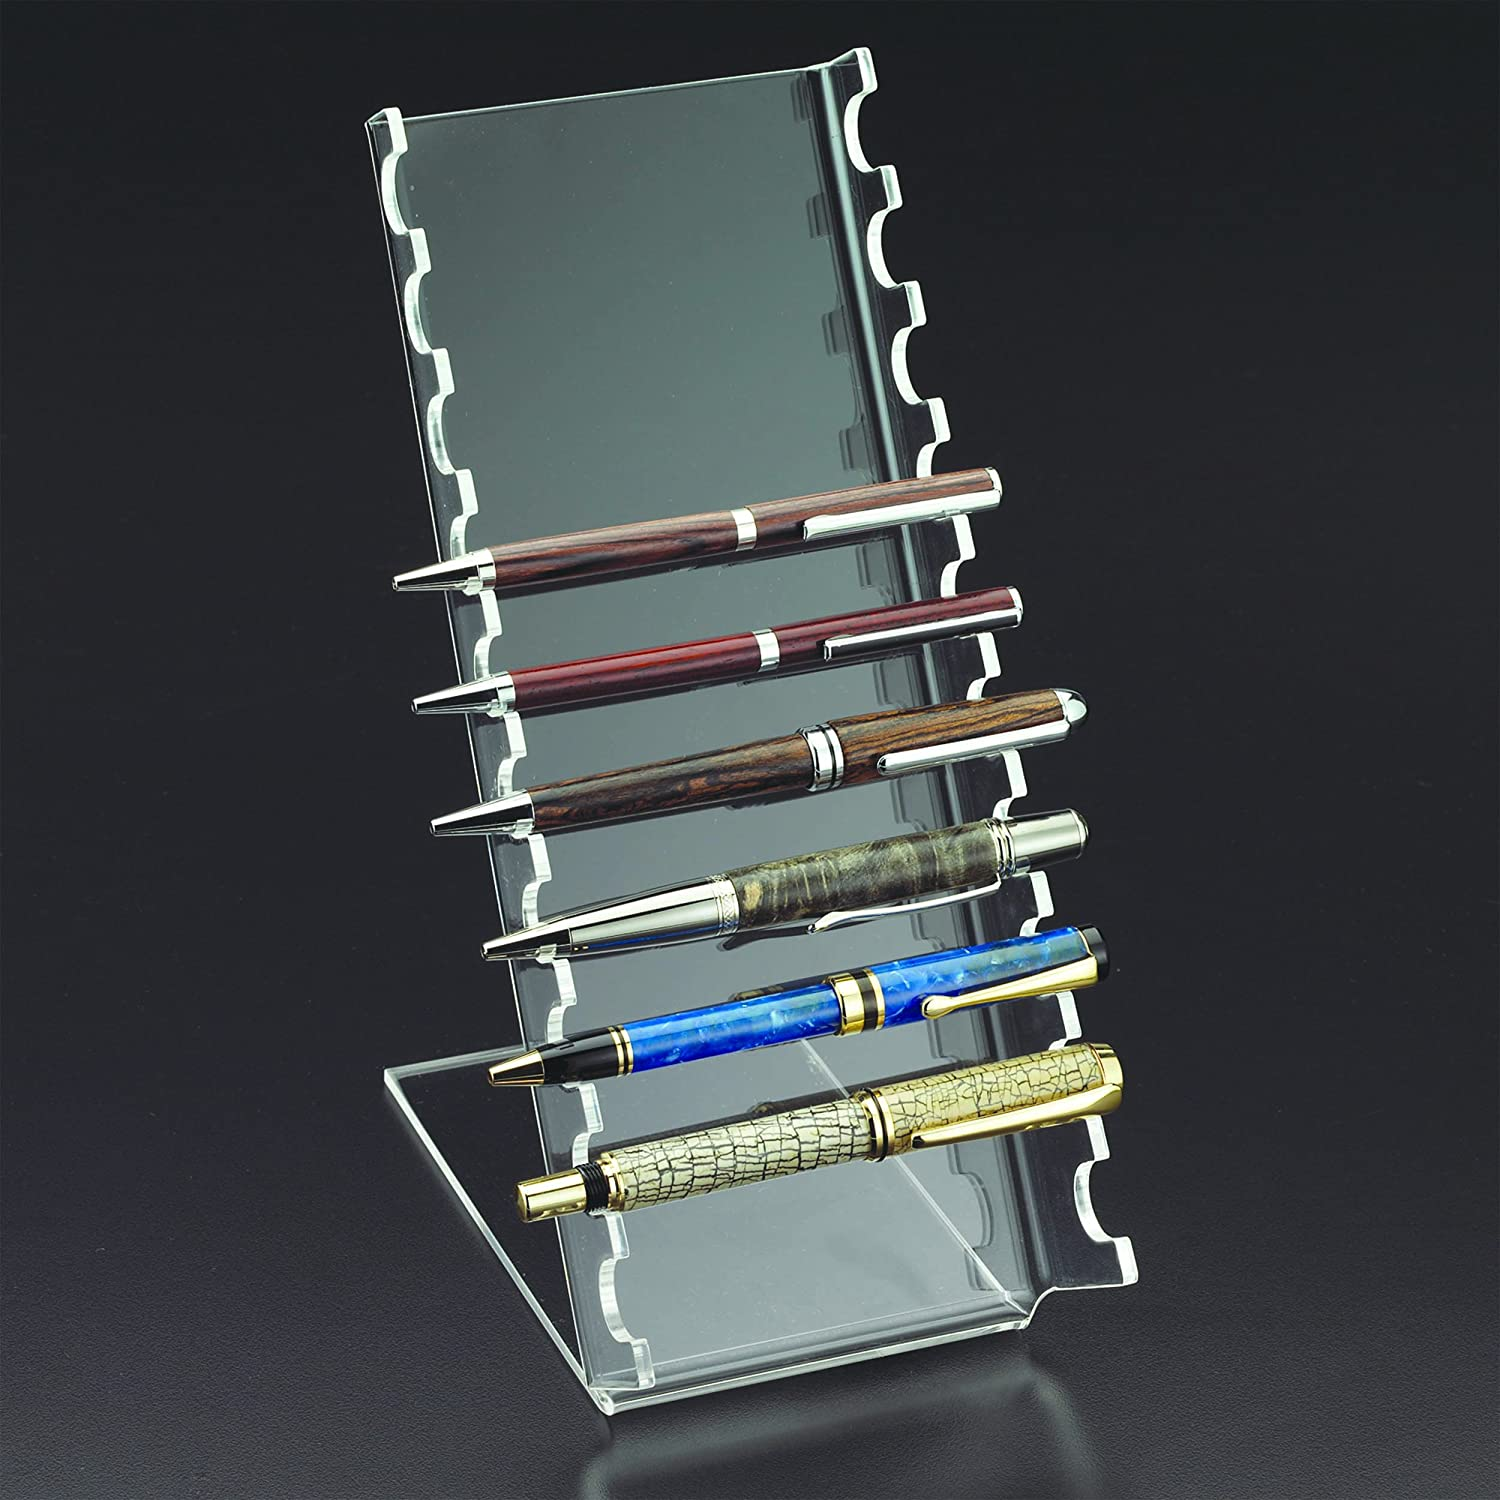 5 Premium 8 Pen Display Holder Easel Stand for Fountain Pens Pencils